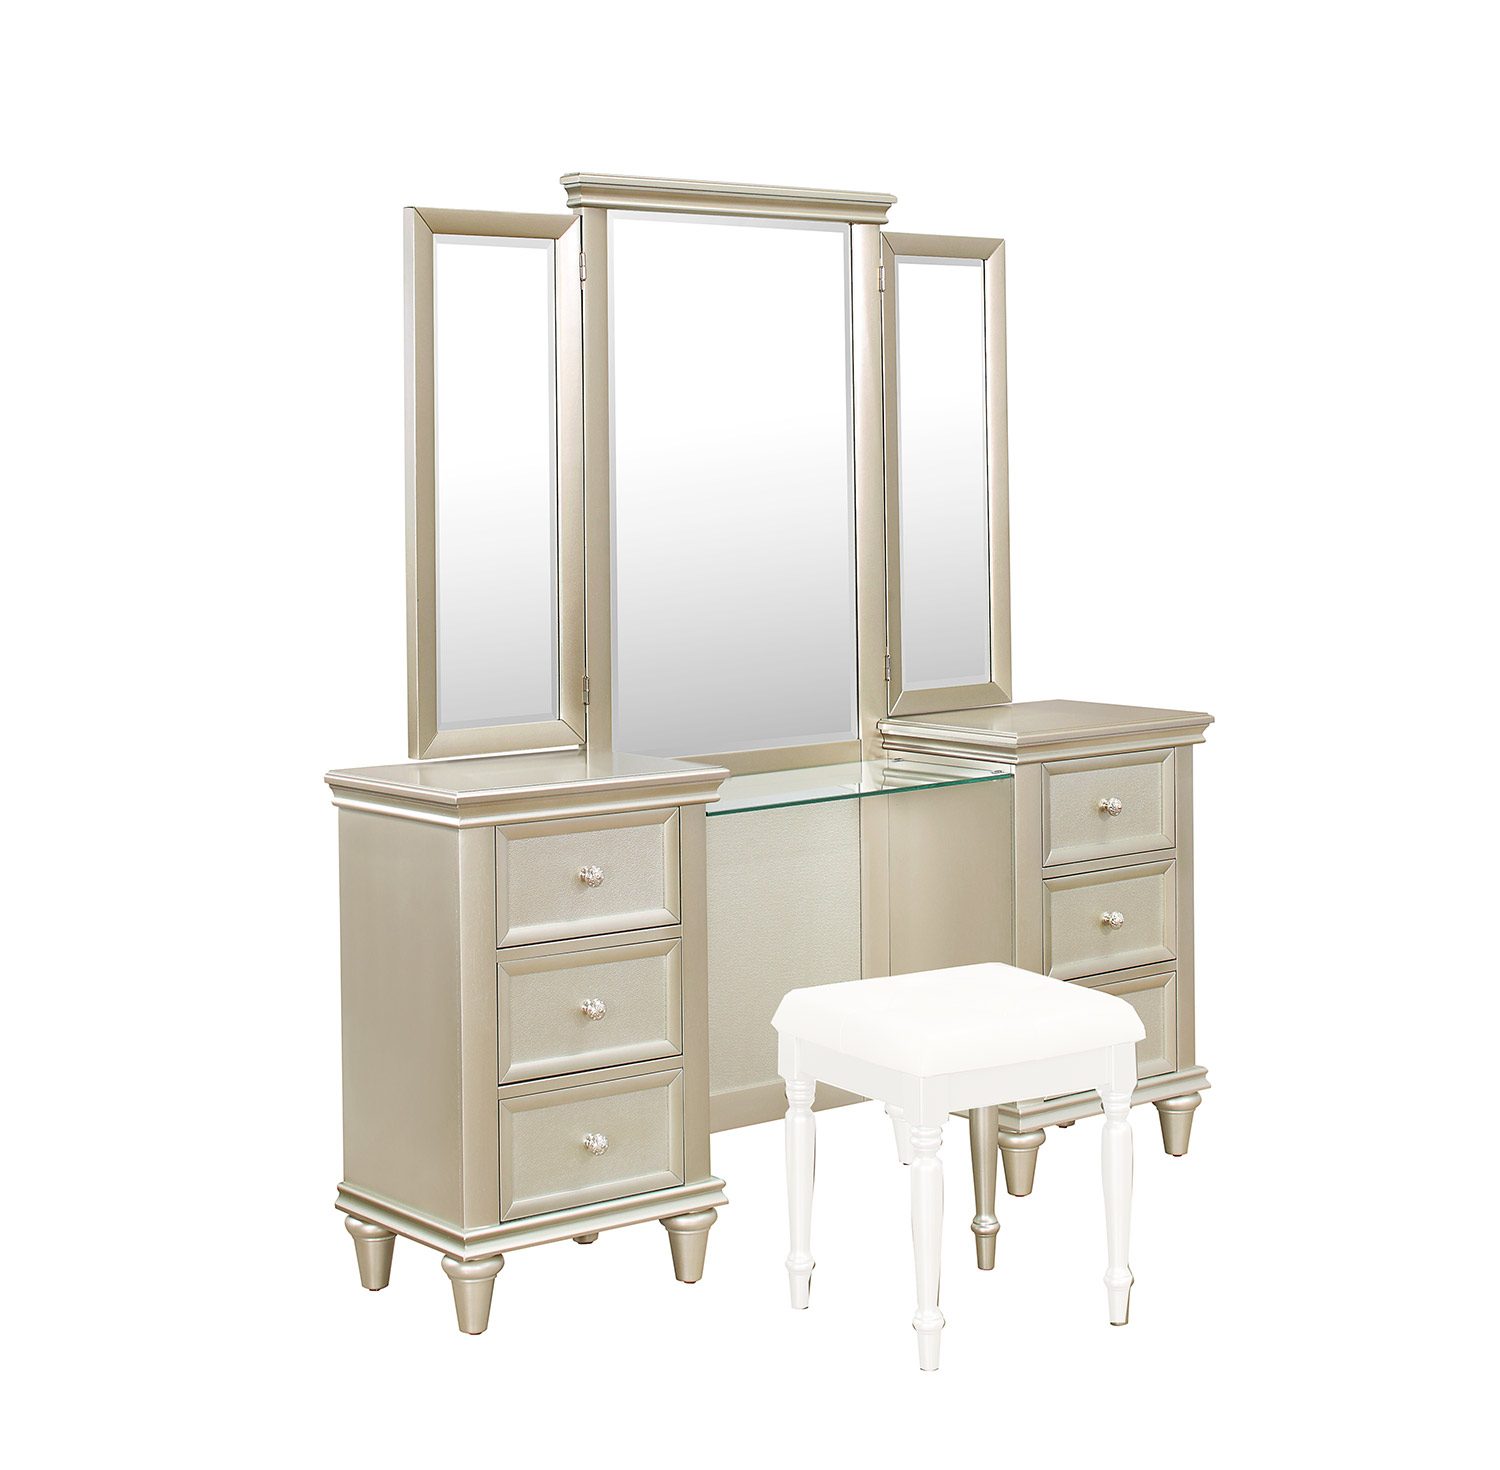 Homelegance Celandine Vanity Dresser with Mirror